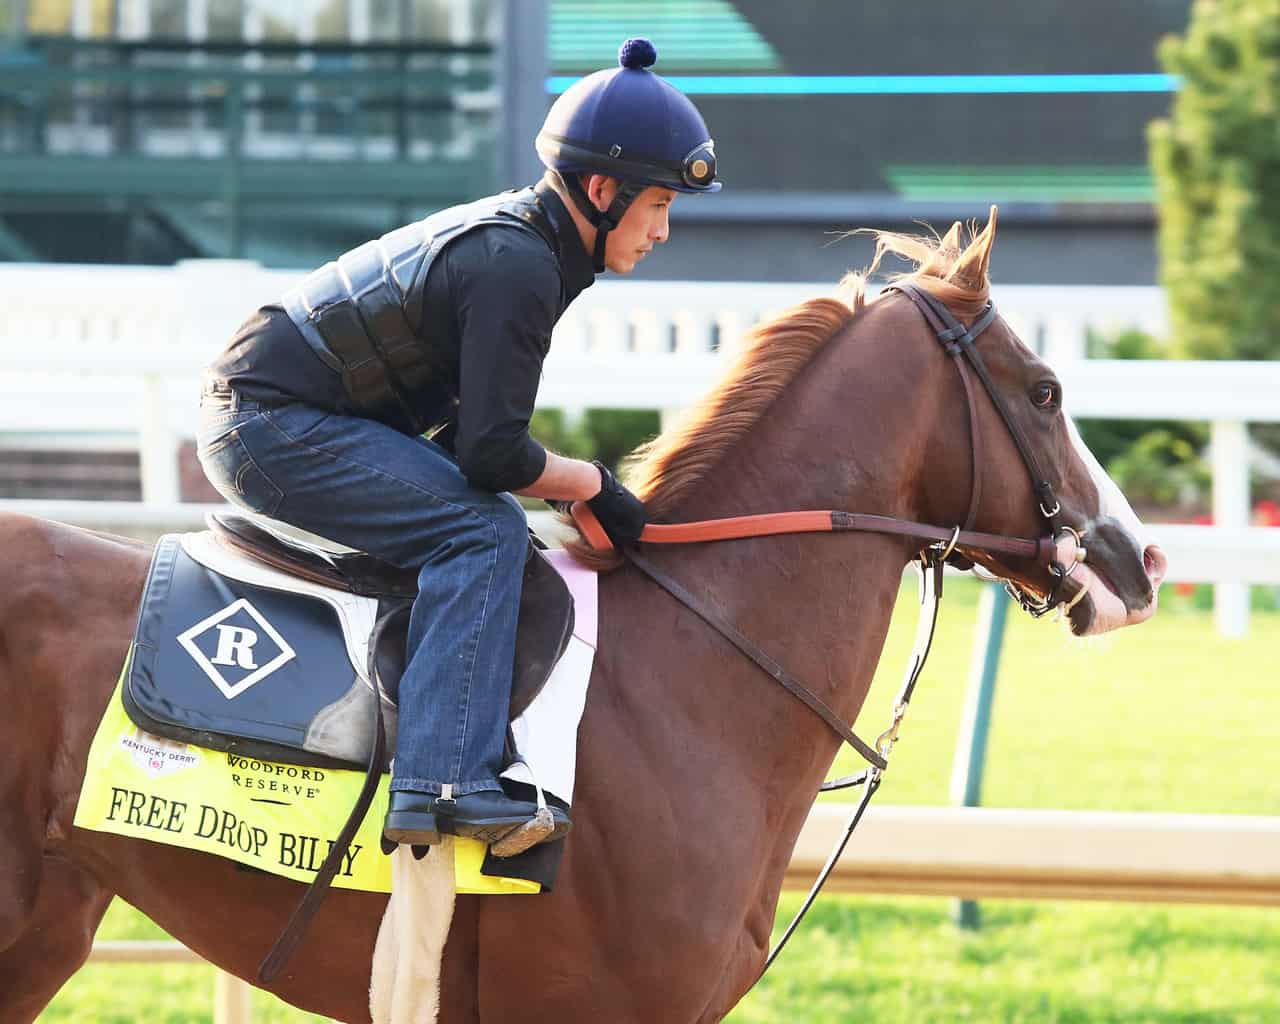 Justify installed early 3-1 favorite for Kentucky Derby